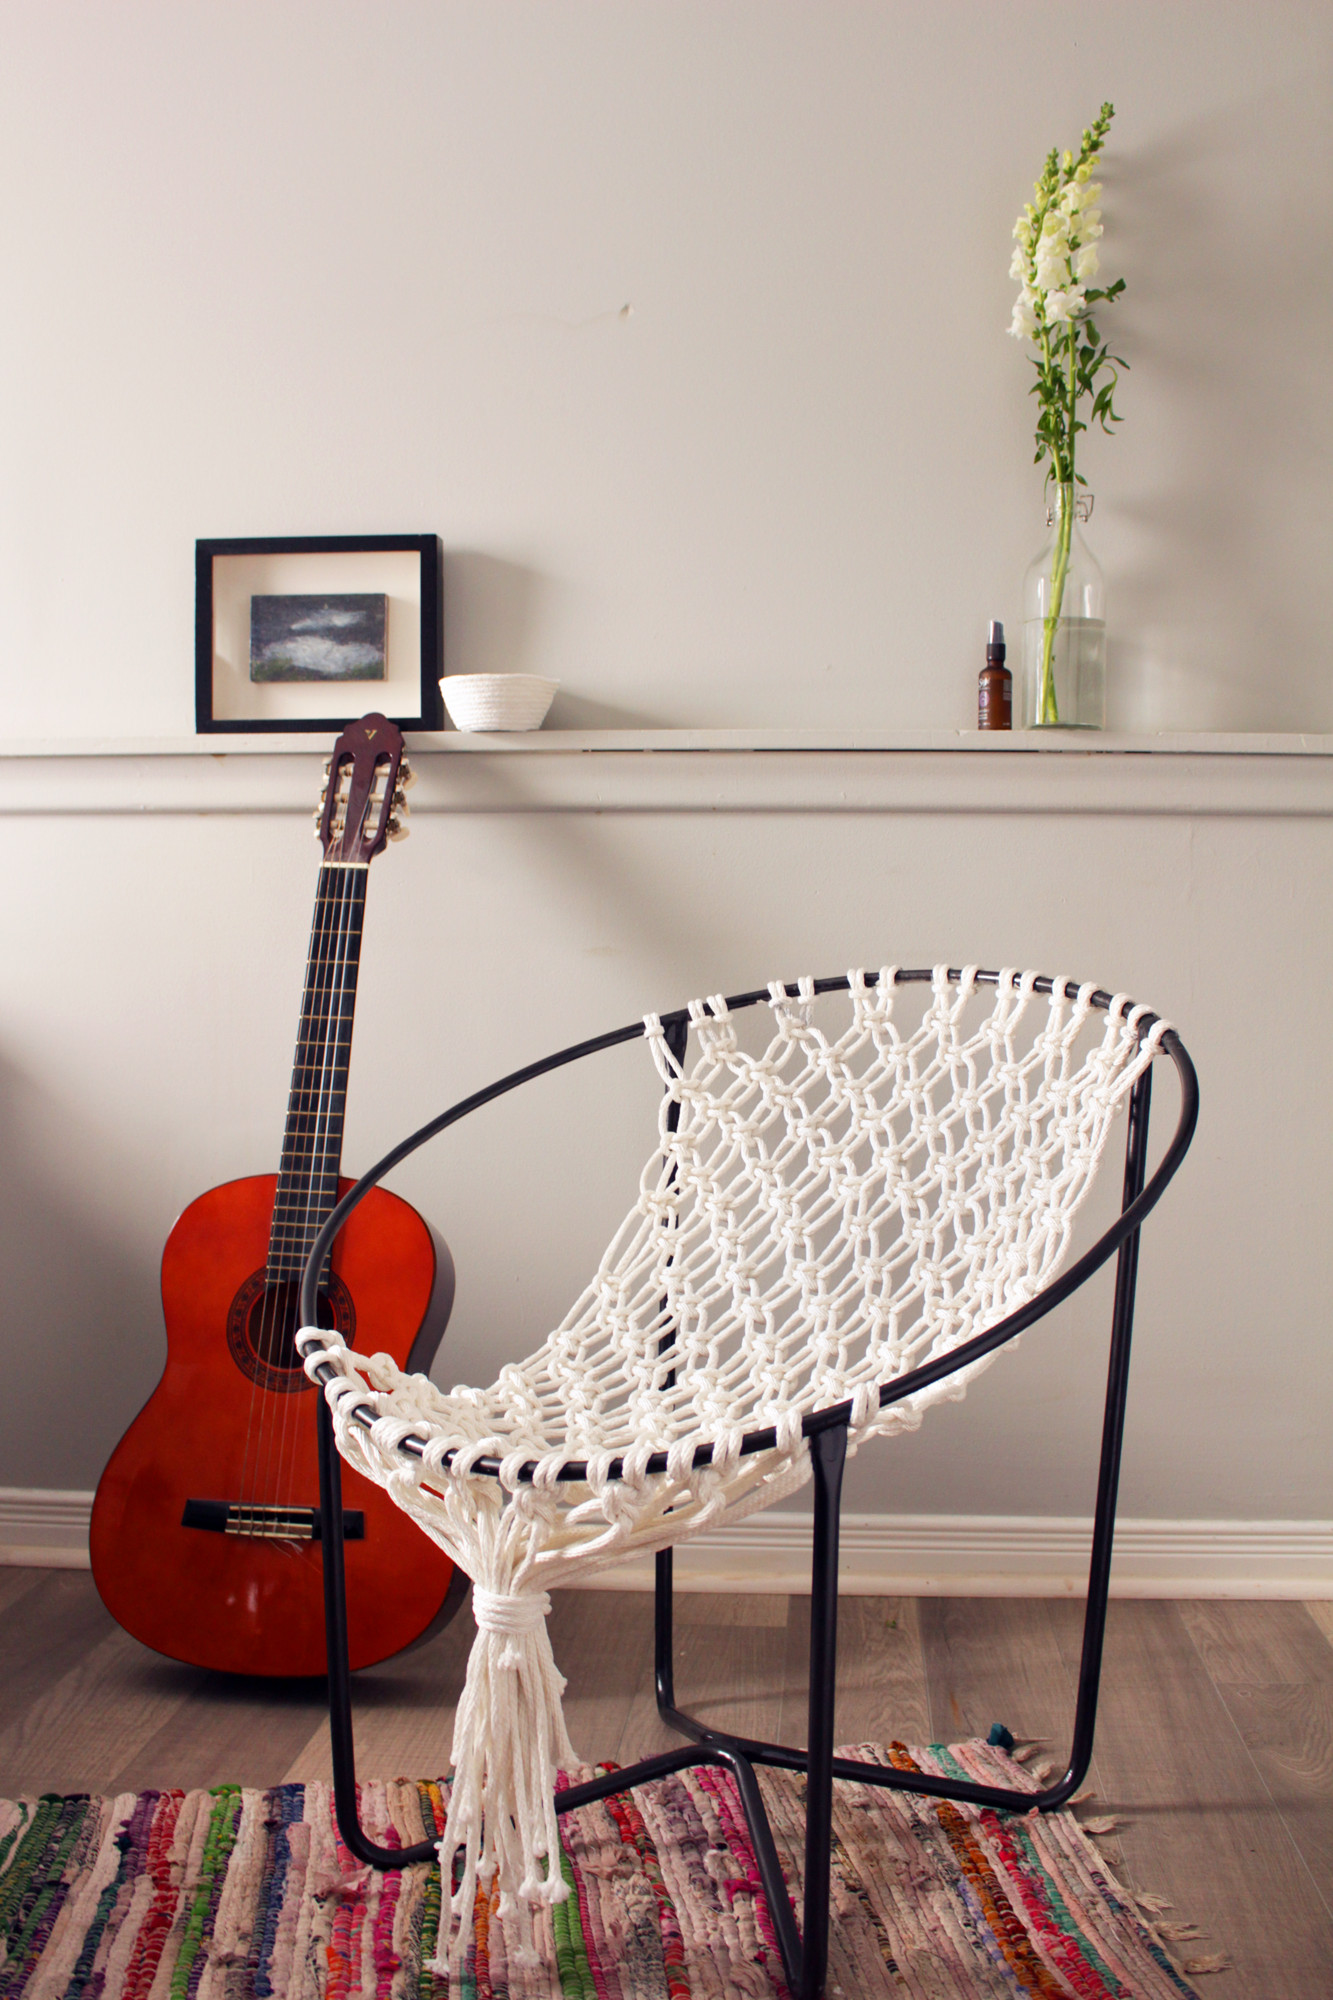 Best ideas about DIY Macrame Hanging Chair . Save or Pin DIY Macrame Hammock Chair Now.